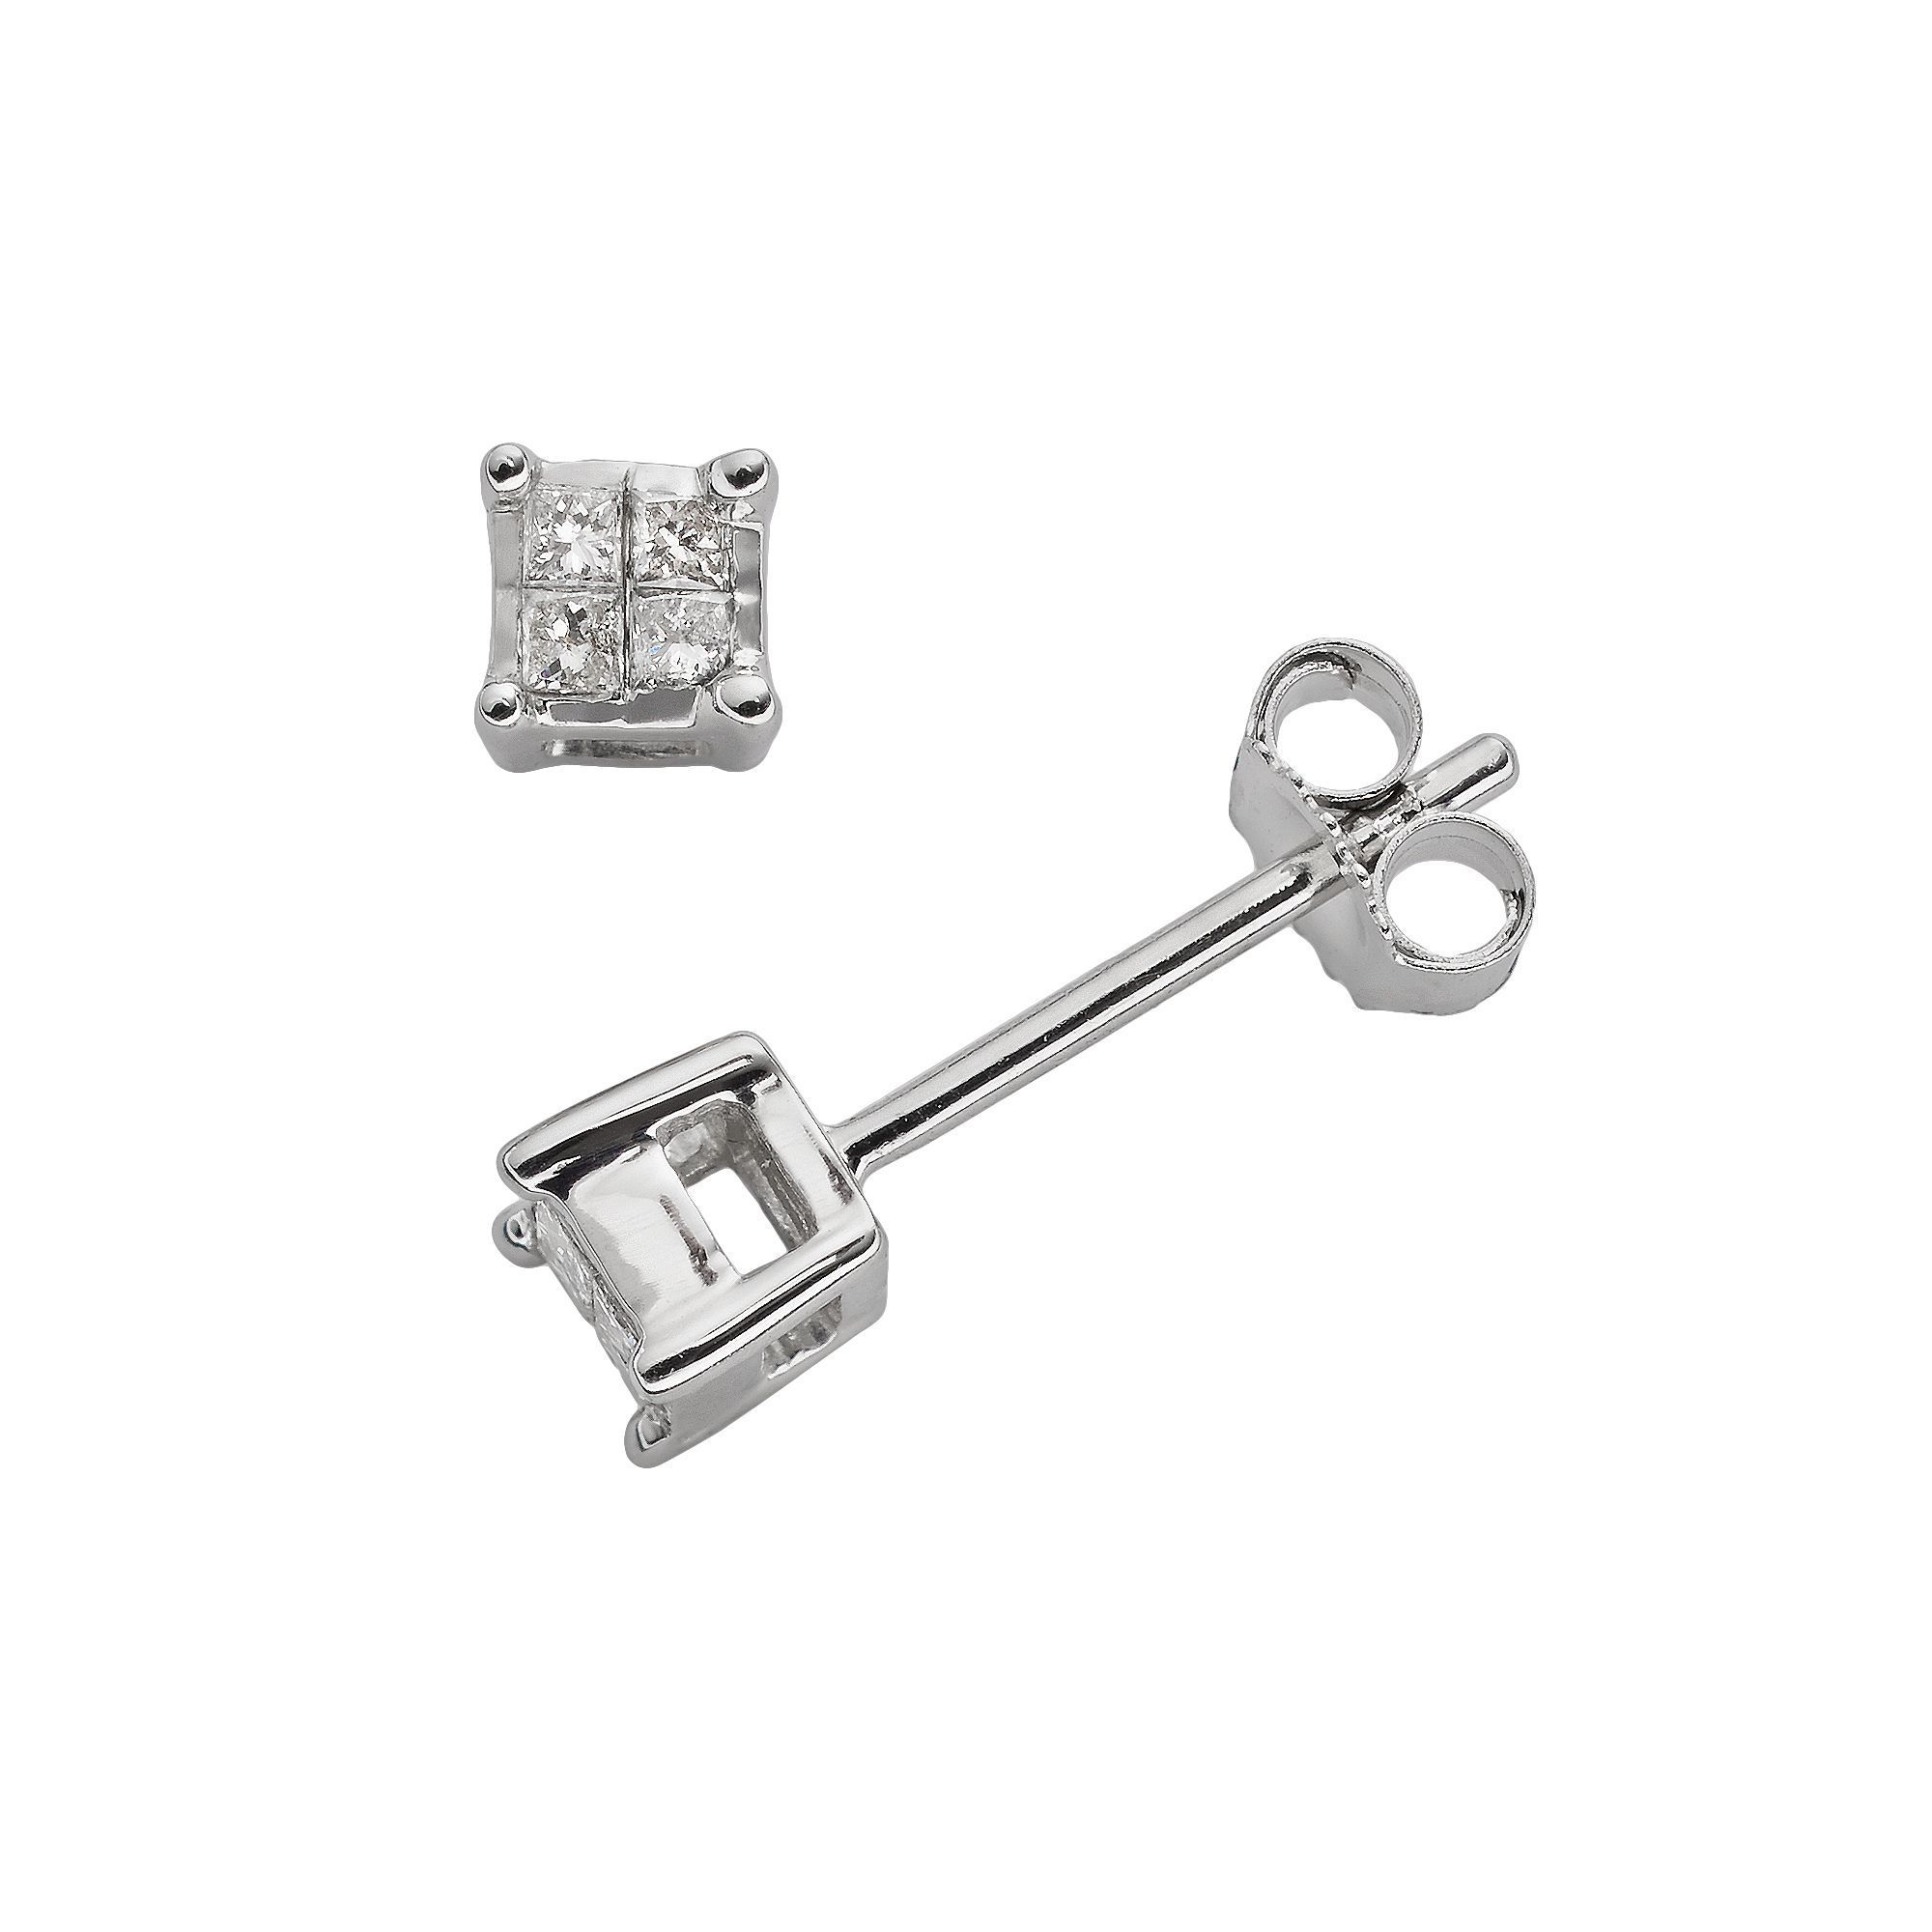 10k White Gold 1 10 Ct T W Diamond Stud Earrings Diamond Earrings Studs Diamond Studs White Gold Earrings Studs